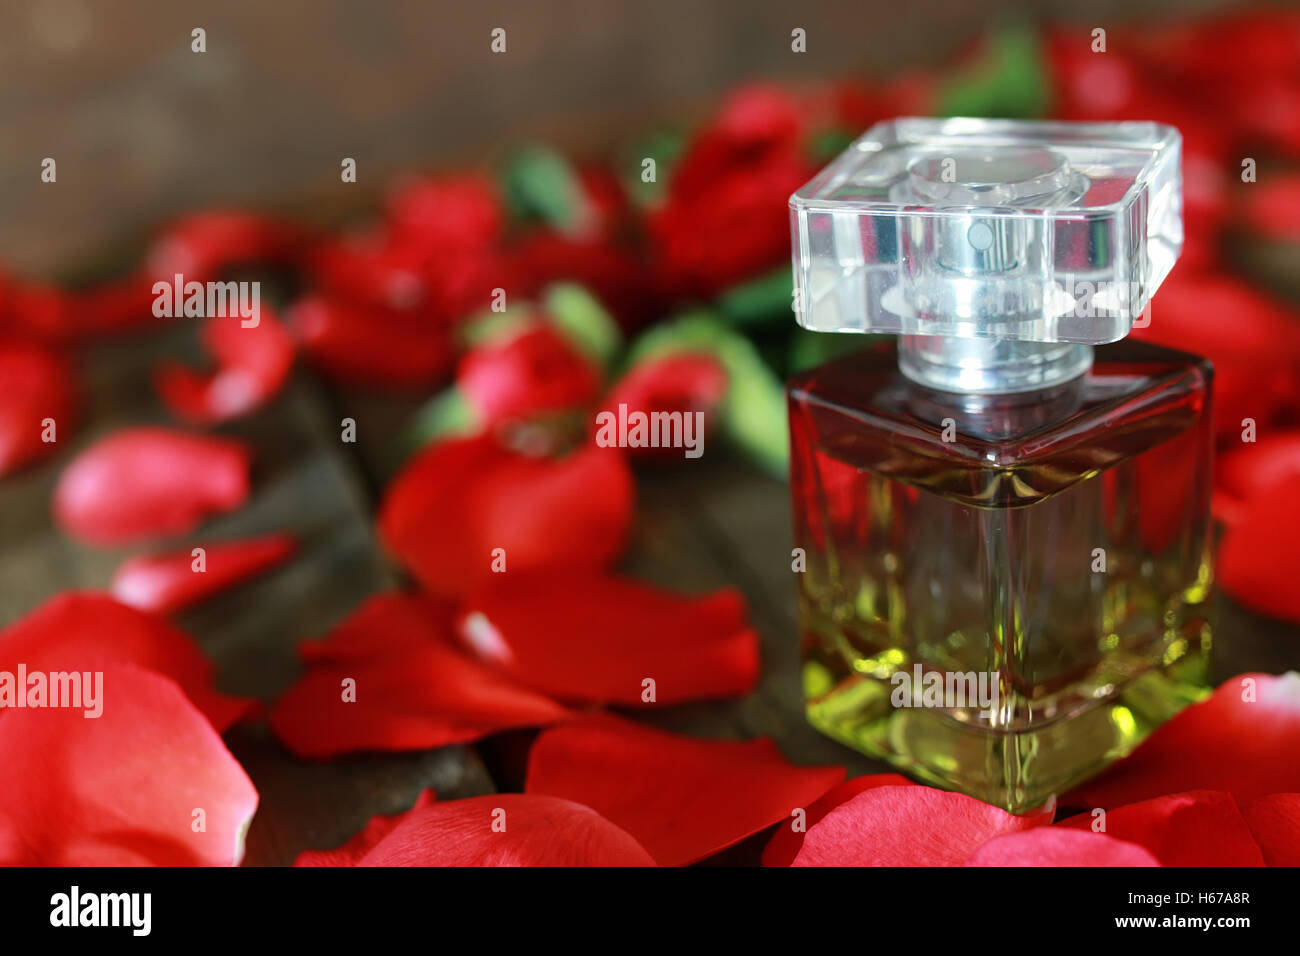 perfume bottle and petals - Stock Image